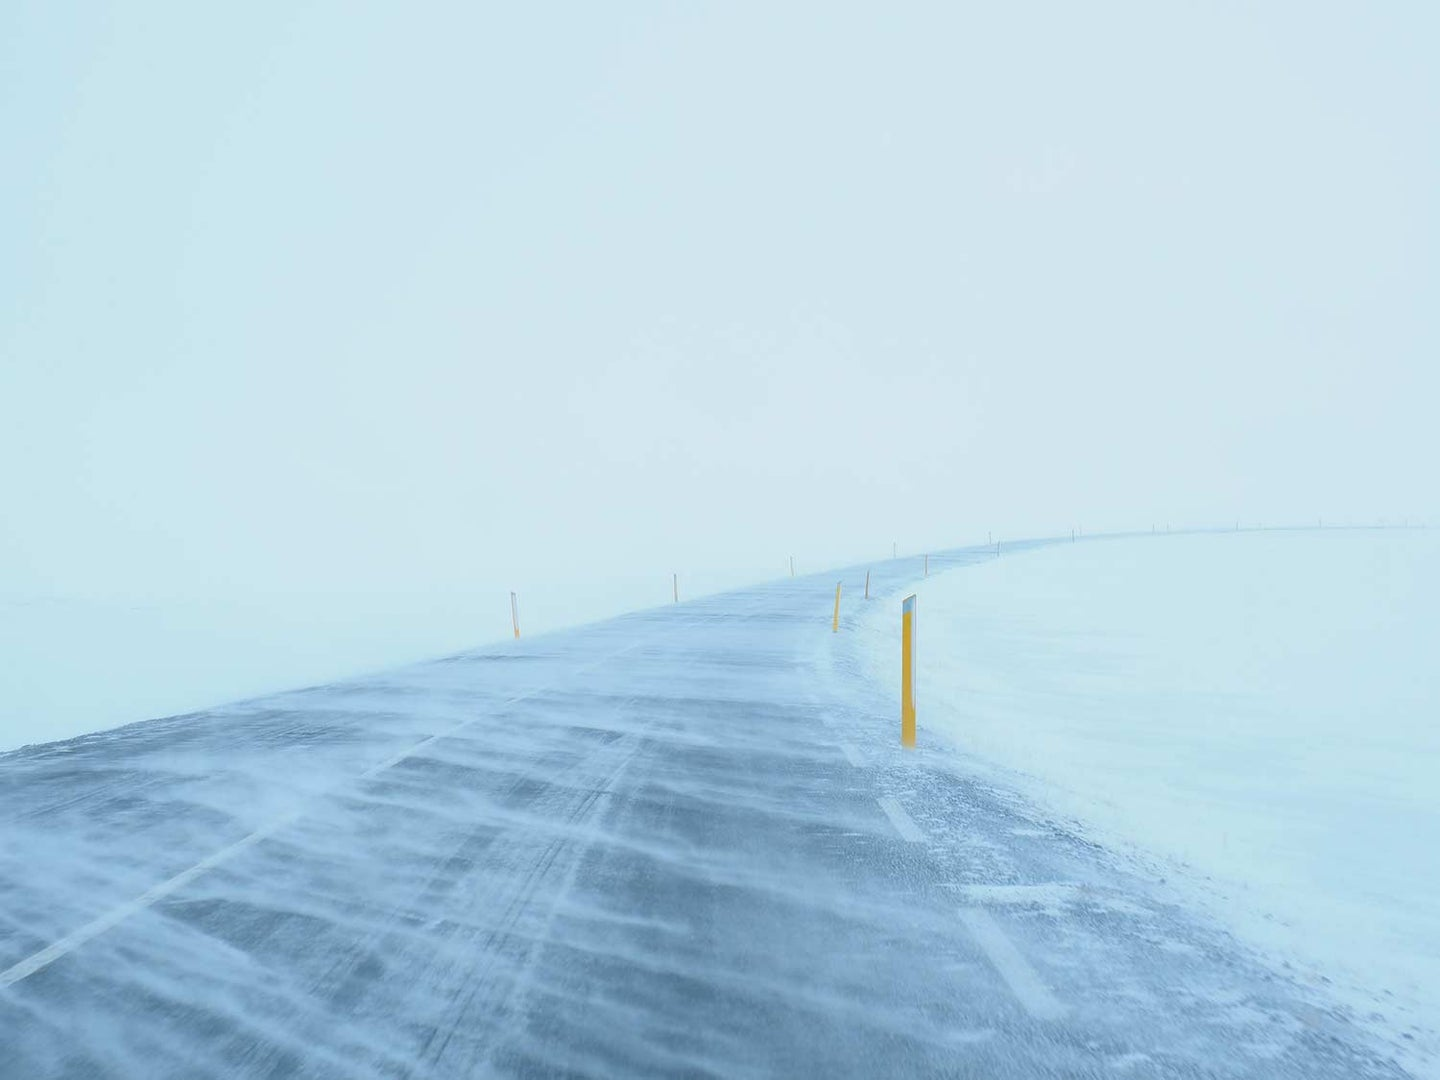 An image of a road covered in snow during a blizzard.